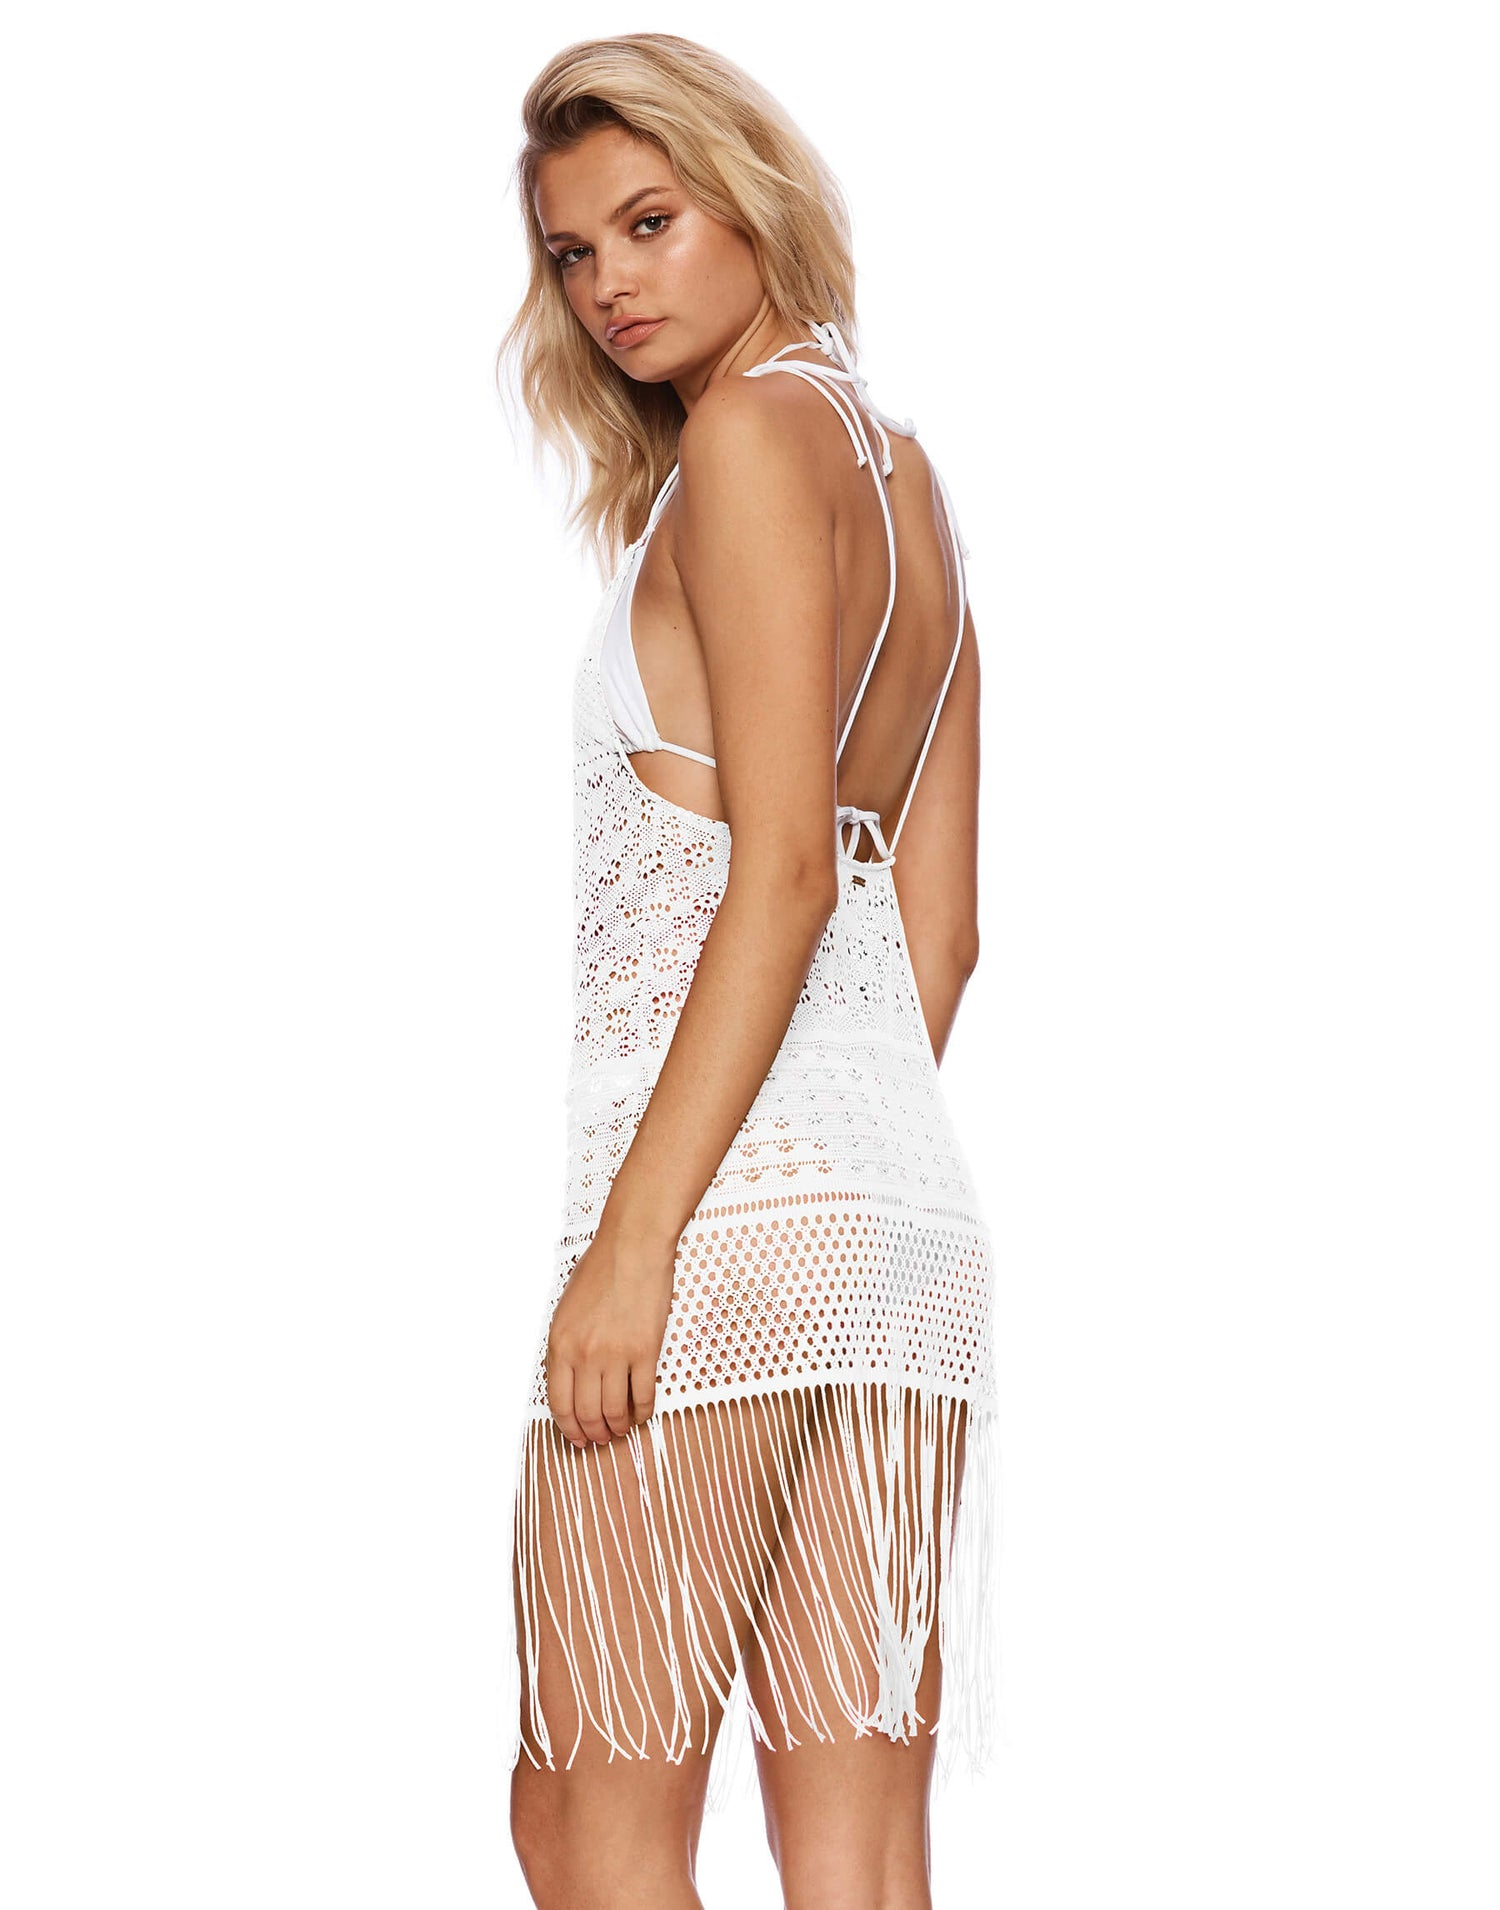 Sienna Mini Dress Crochet Cover Up in White - back view